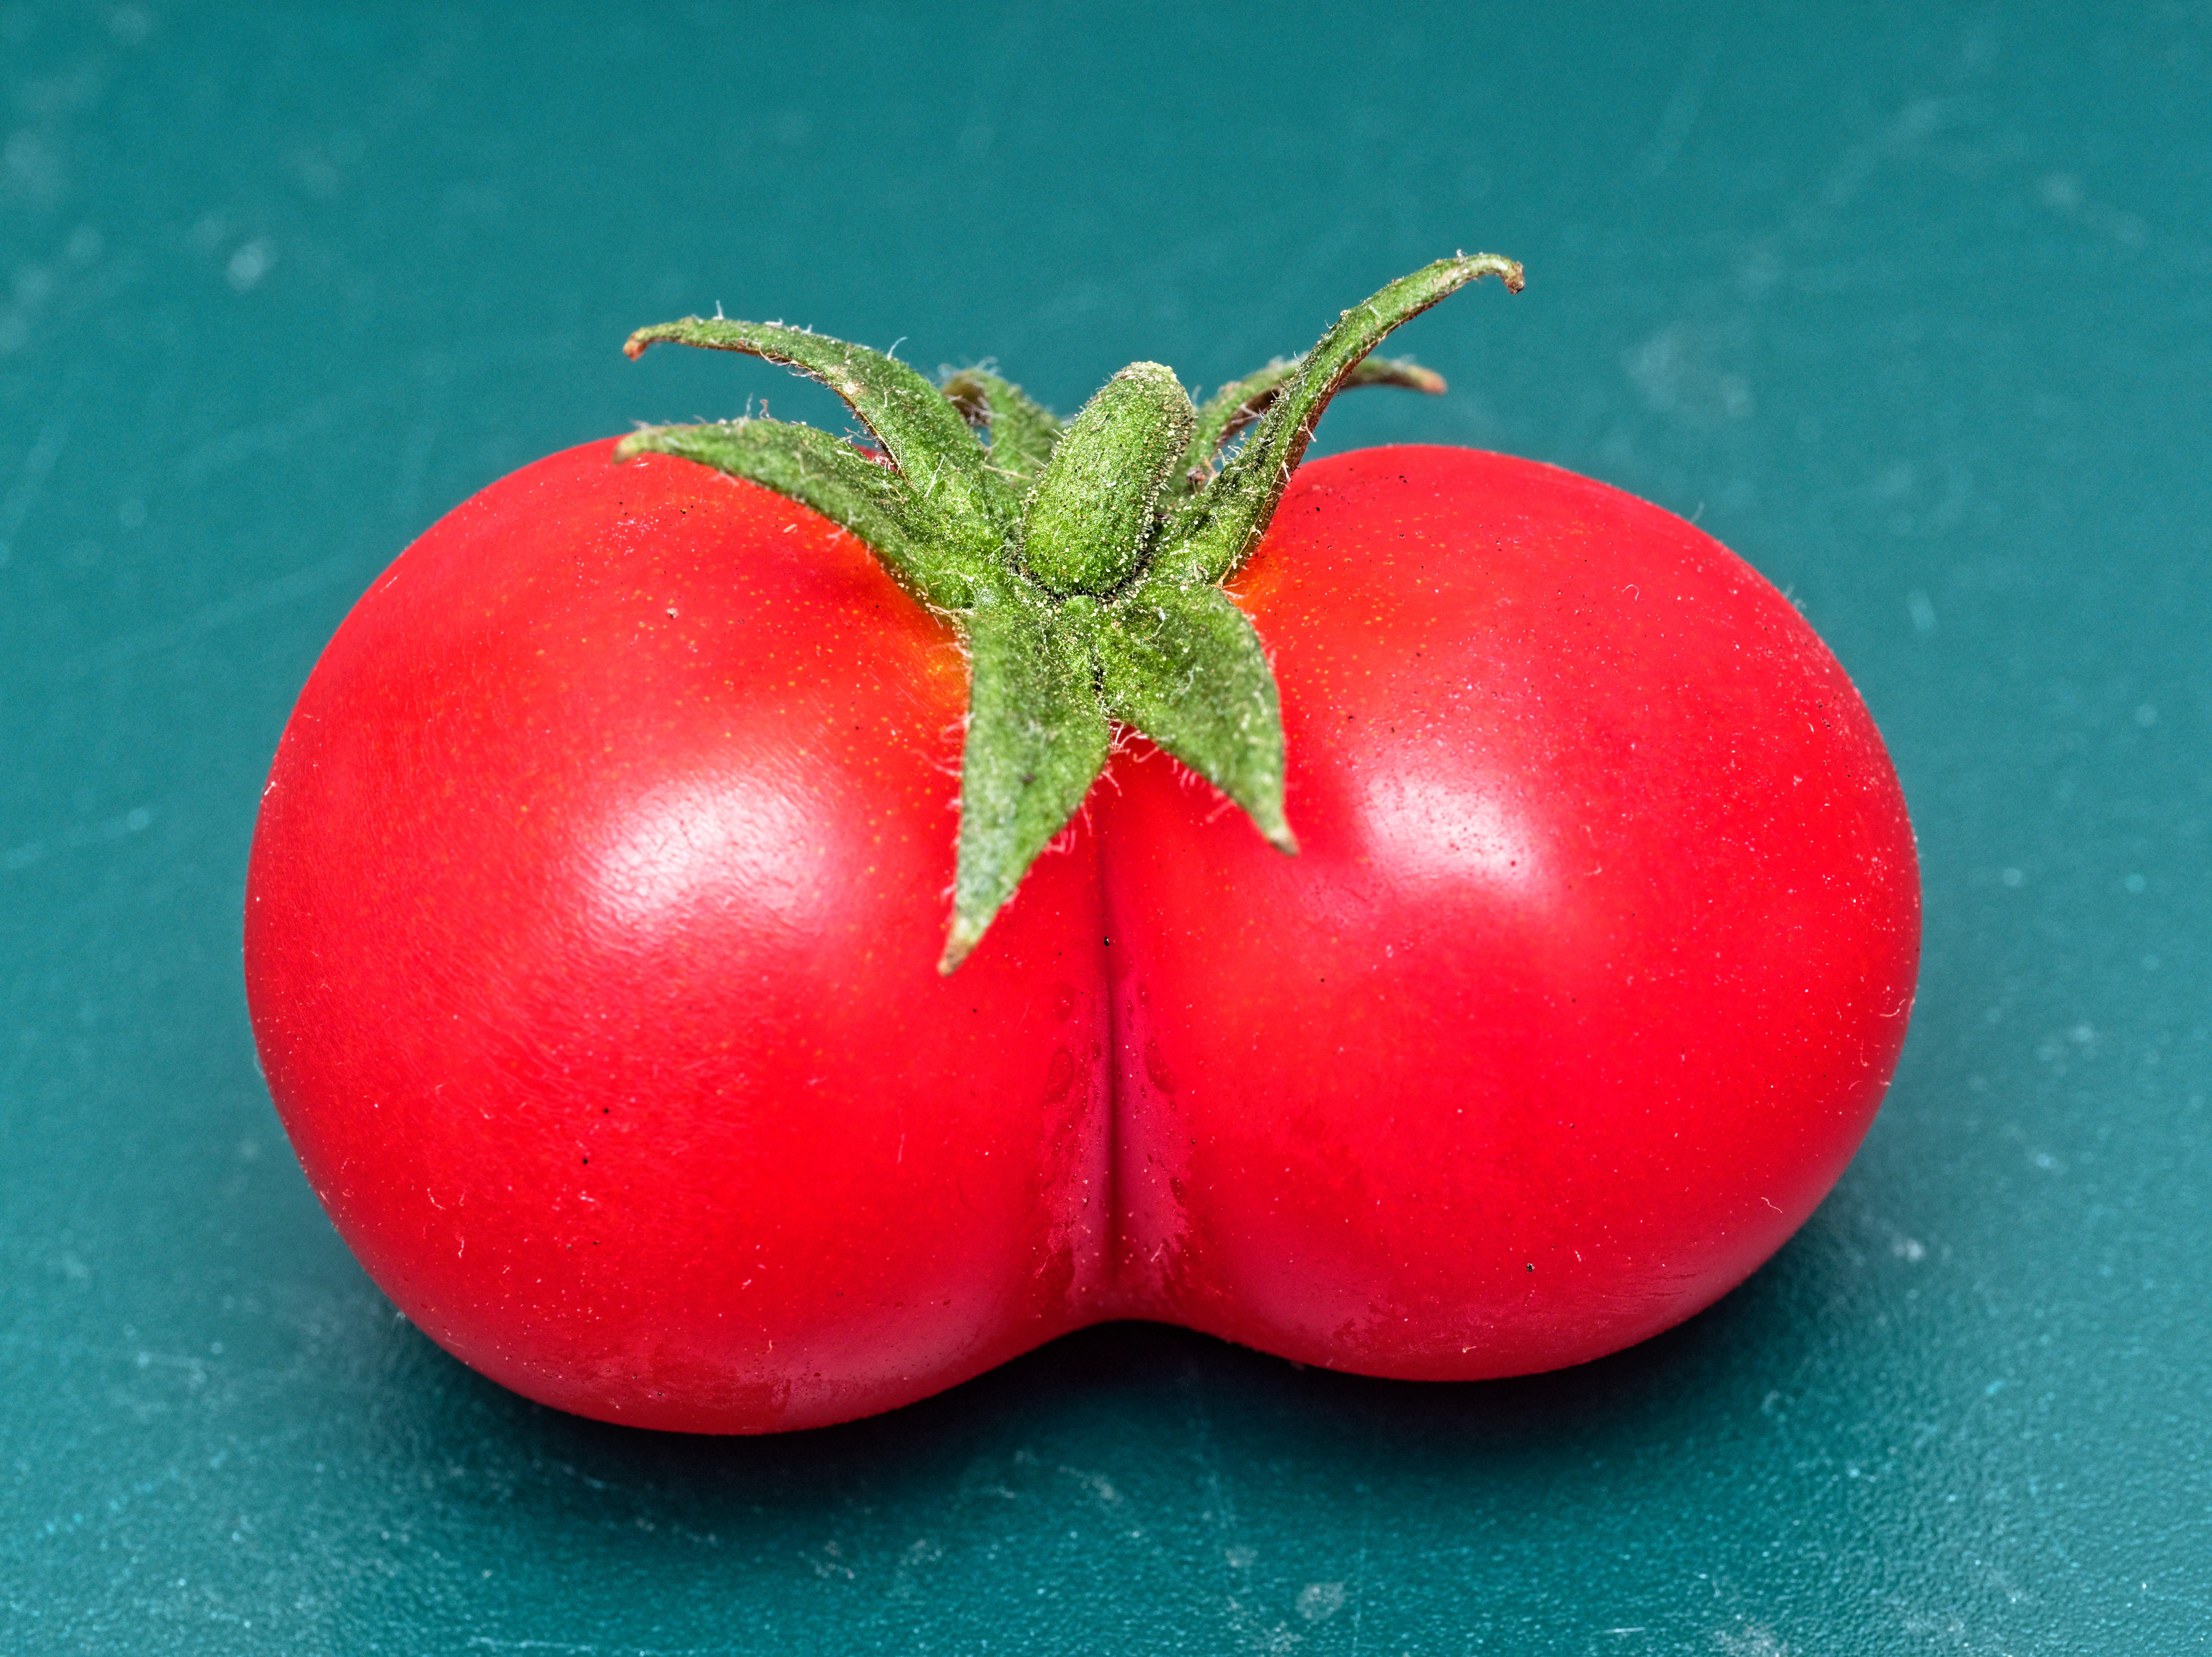 This should be Twin-tomato-2.jpeg.  Is it missing?